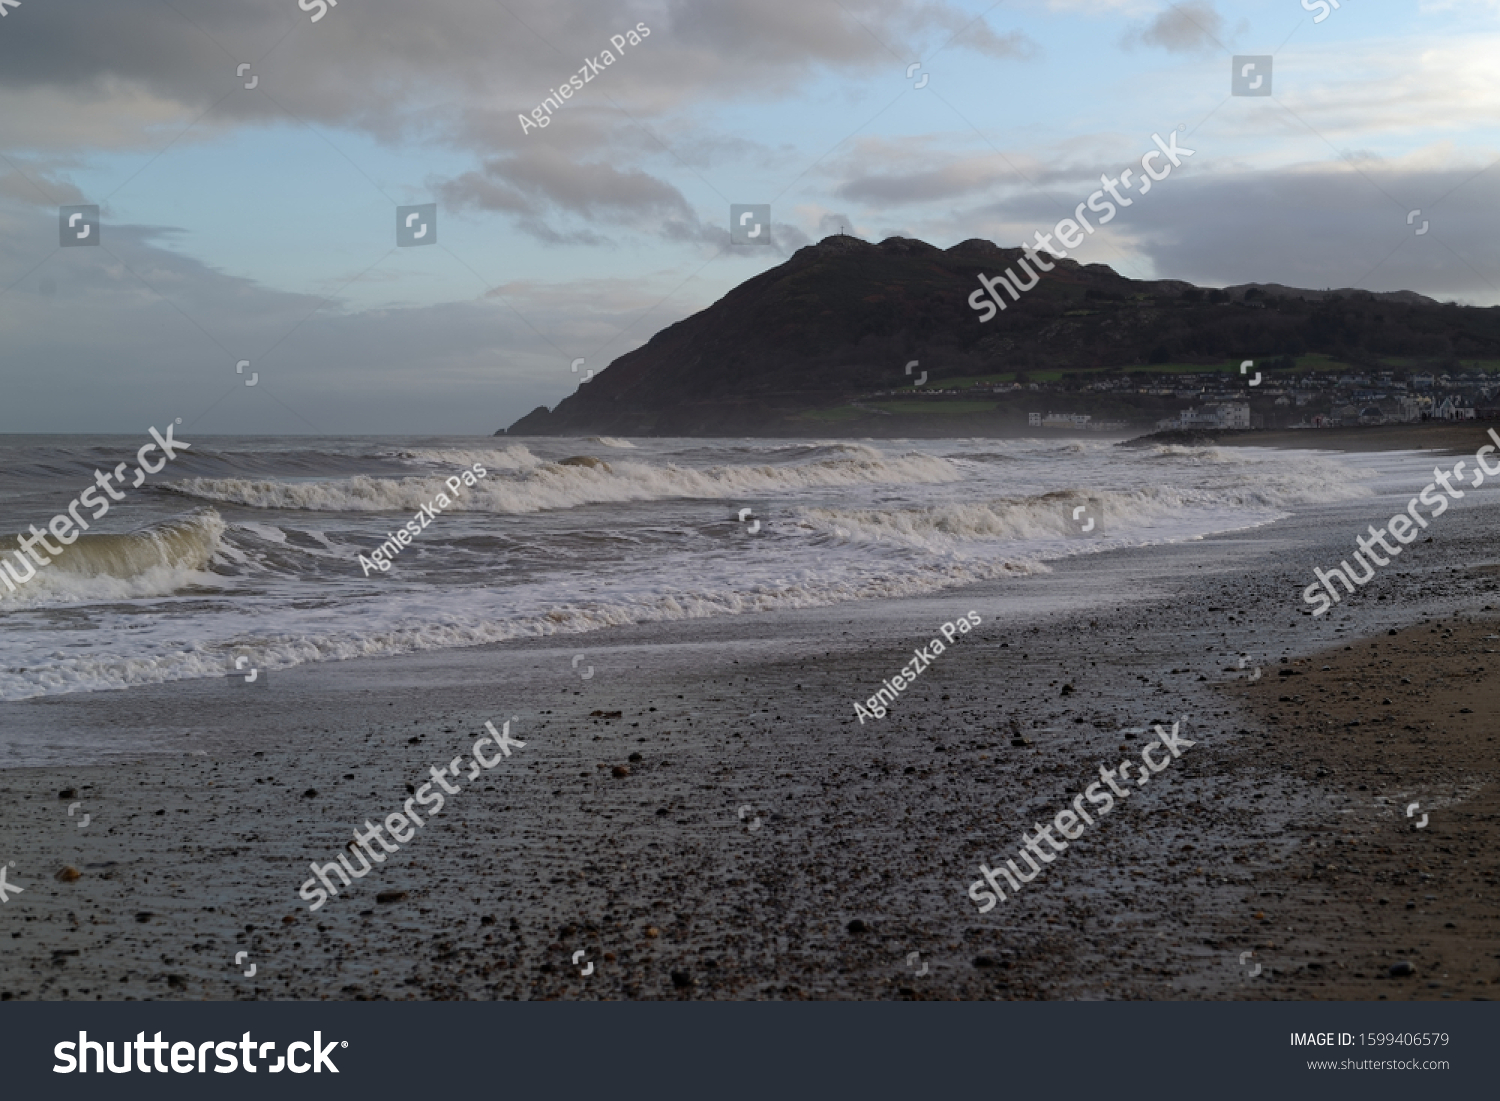 stock-photo-bray-co-wicklow-ireland-dece